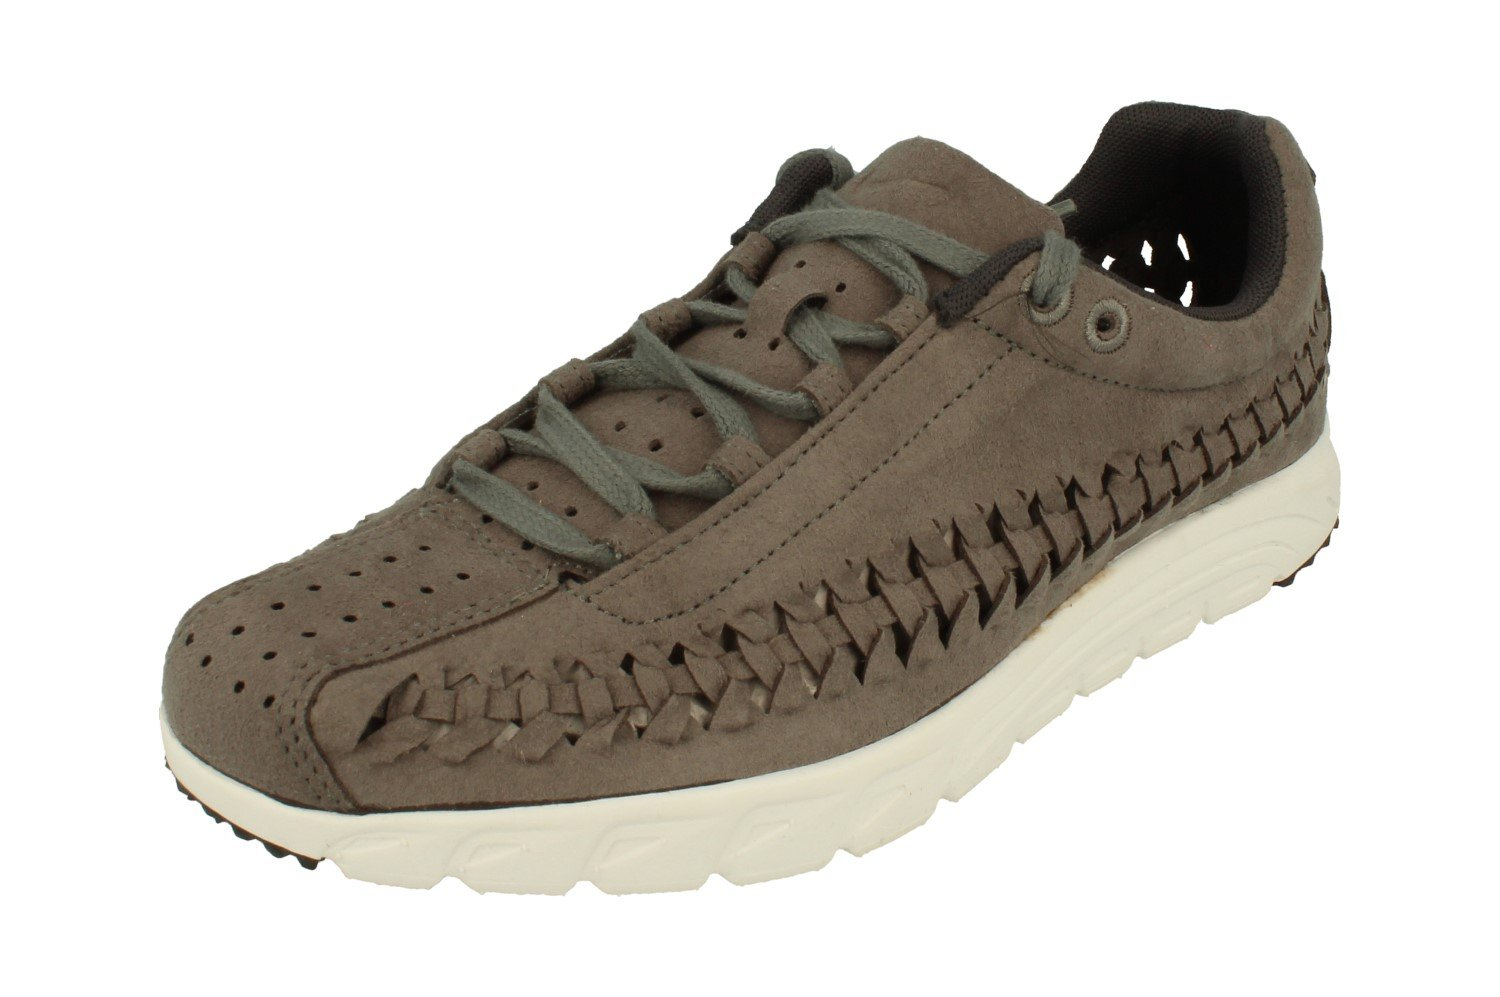 NIKE Men's Mayfly Woven Casual Shoe B005A5DCJQ 6.5 D(M) US|Tumbled Grey Anthracite 002